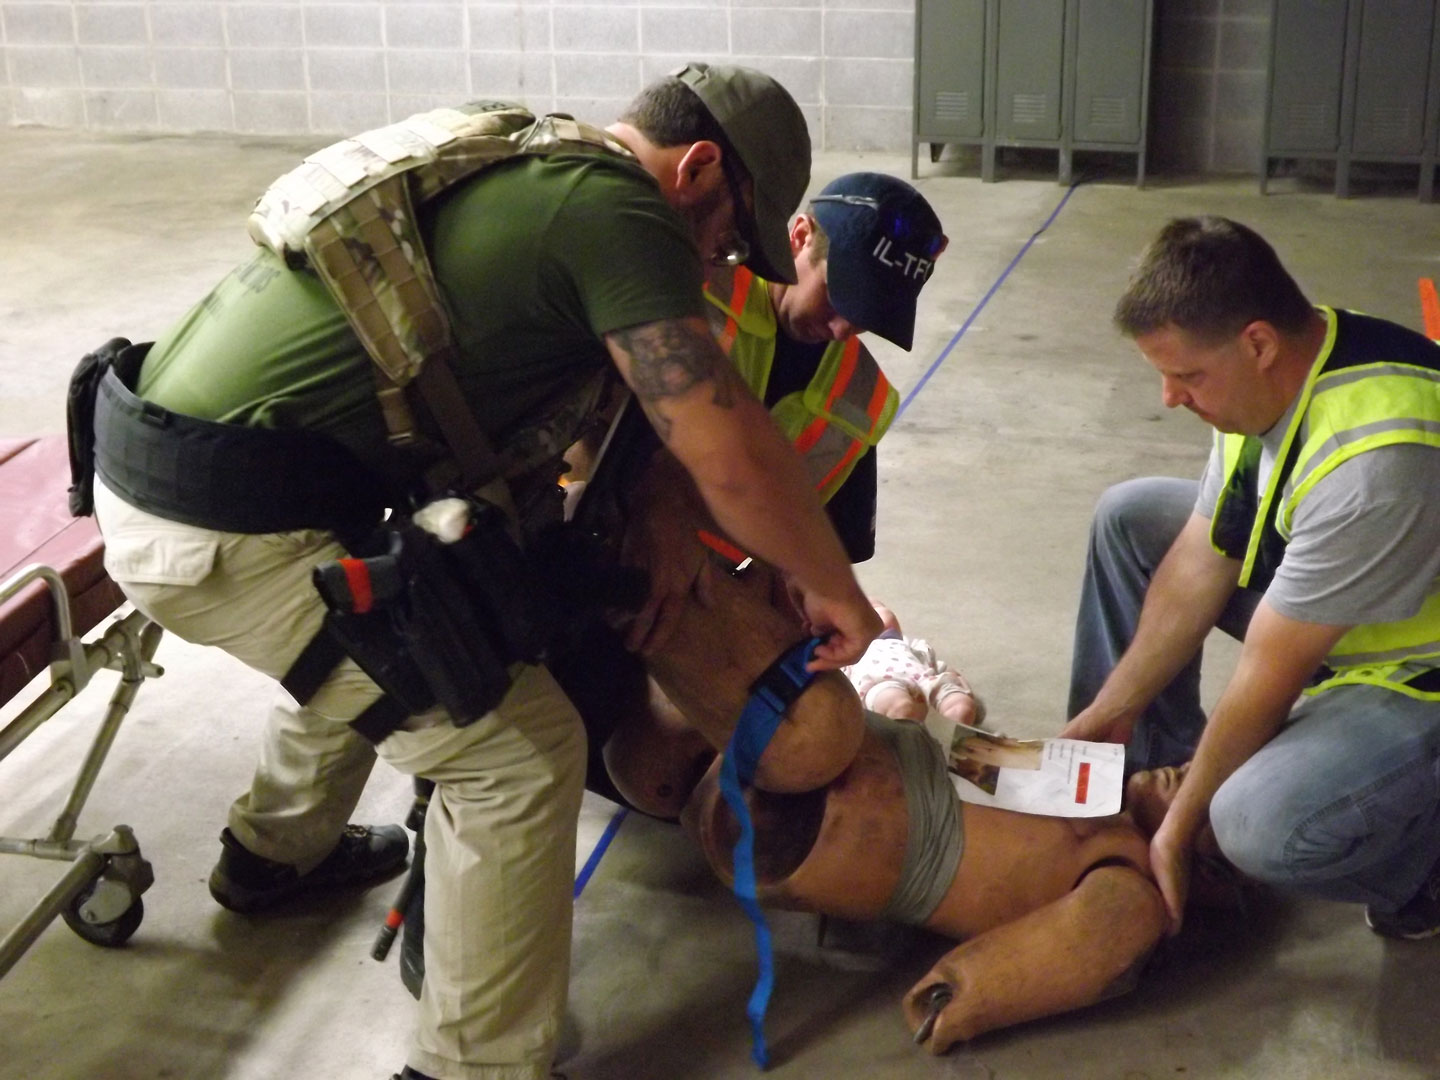 Responders assess and mitigate injuries to a patient before transport.